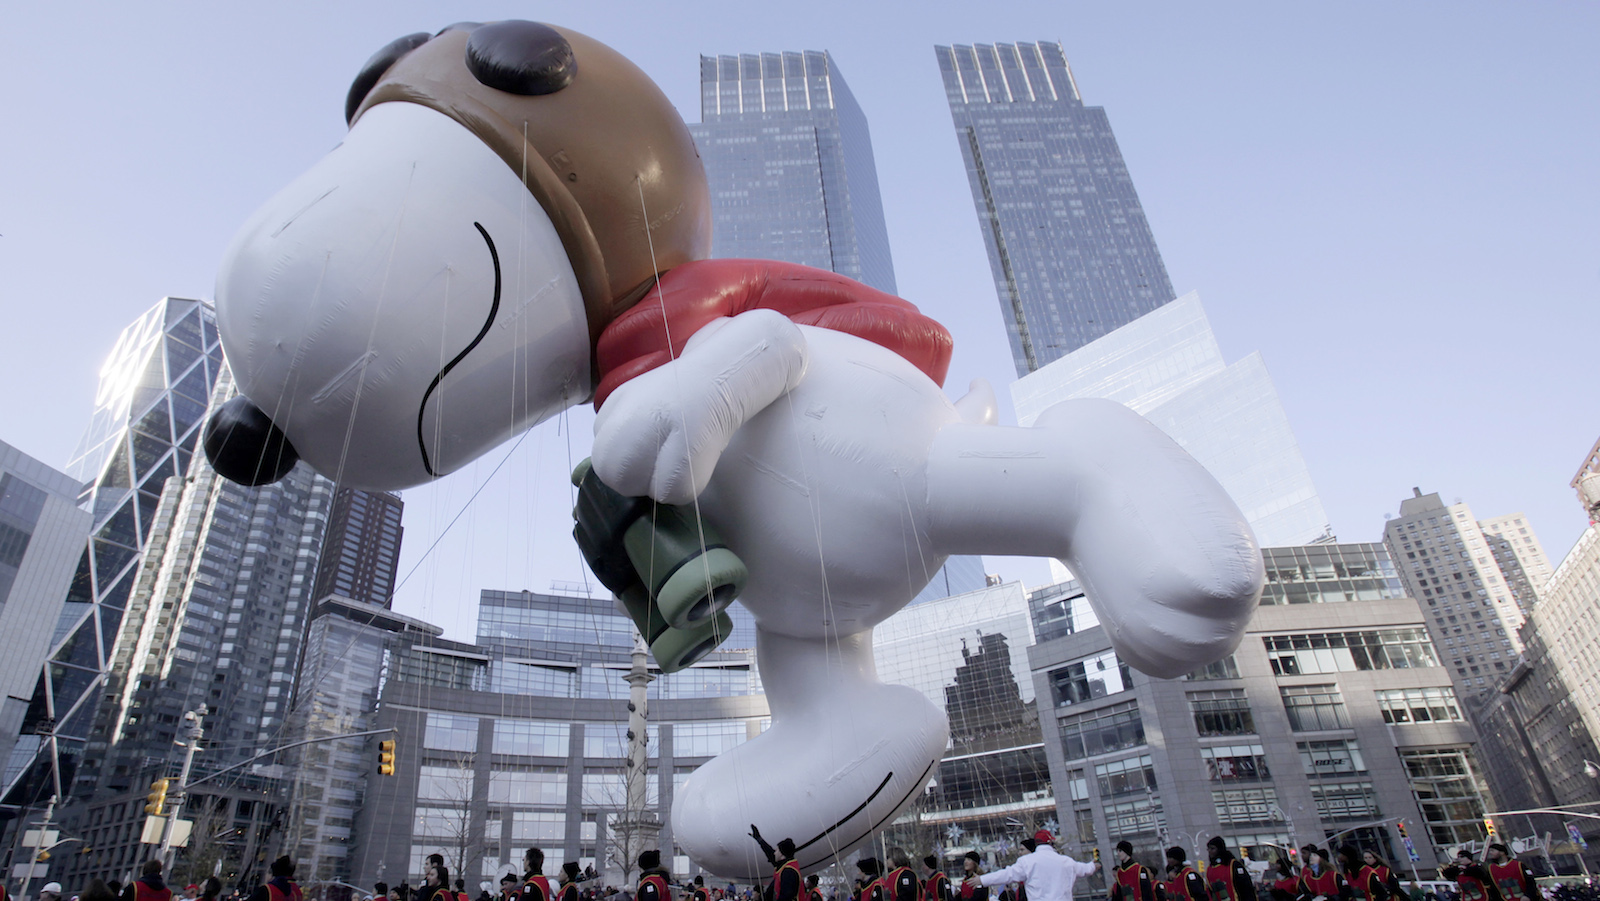 The Snoopy balloon makes its way through Columbus circle during The Macy's Thanksgiving day parade in New York